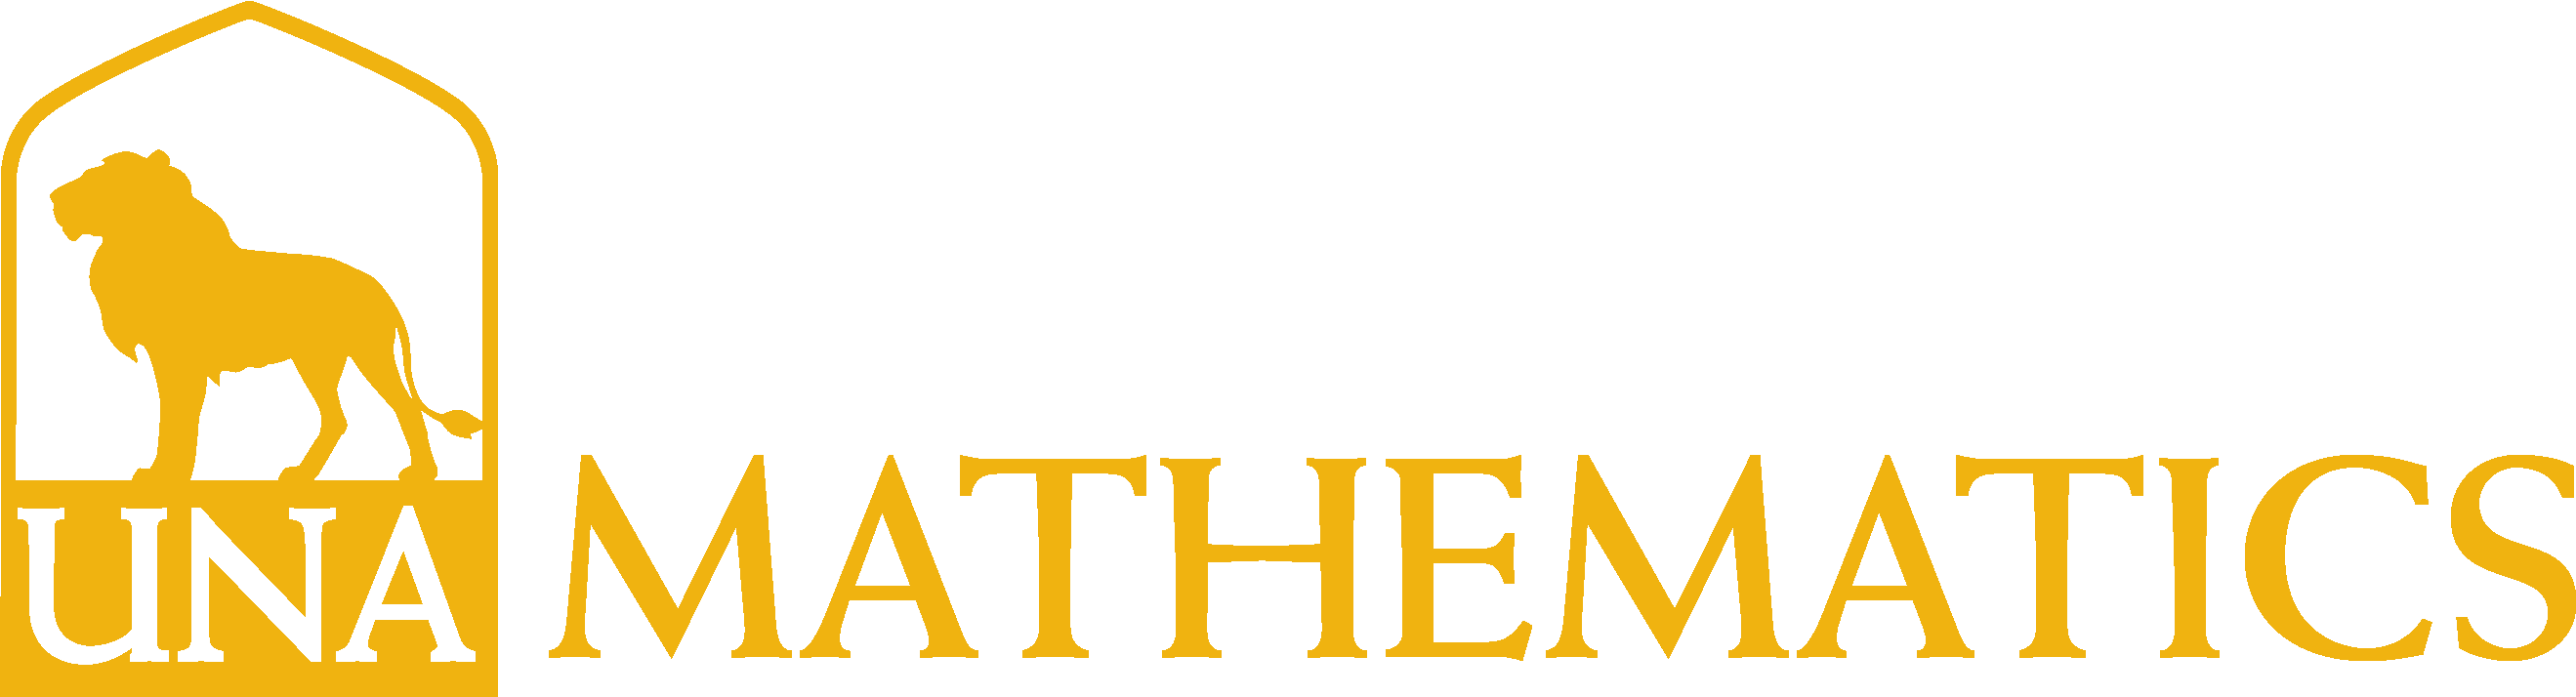 College of Arts and Sciences - Mathematics Logo - Gold - Version 3